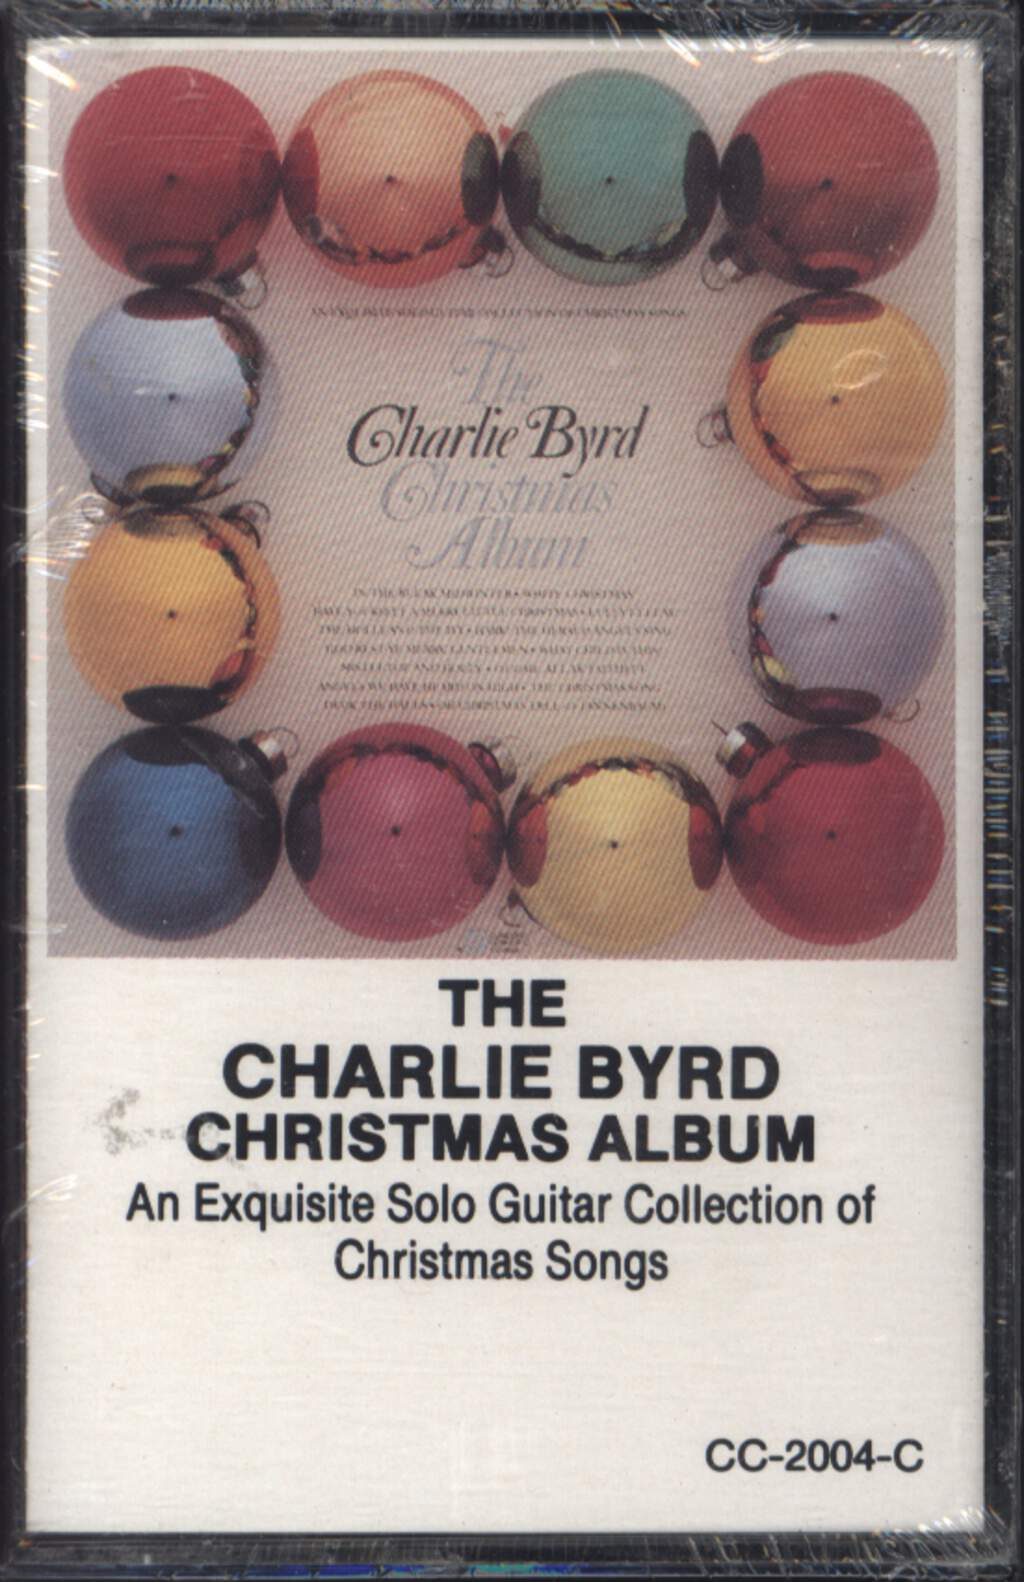 Charlie Byrd: The Charlie Byrd Christmas Album, Compact Cassette